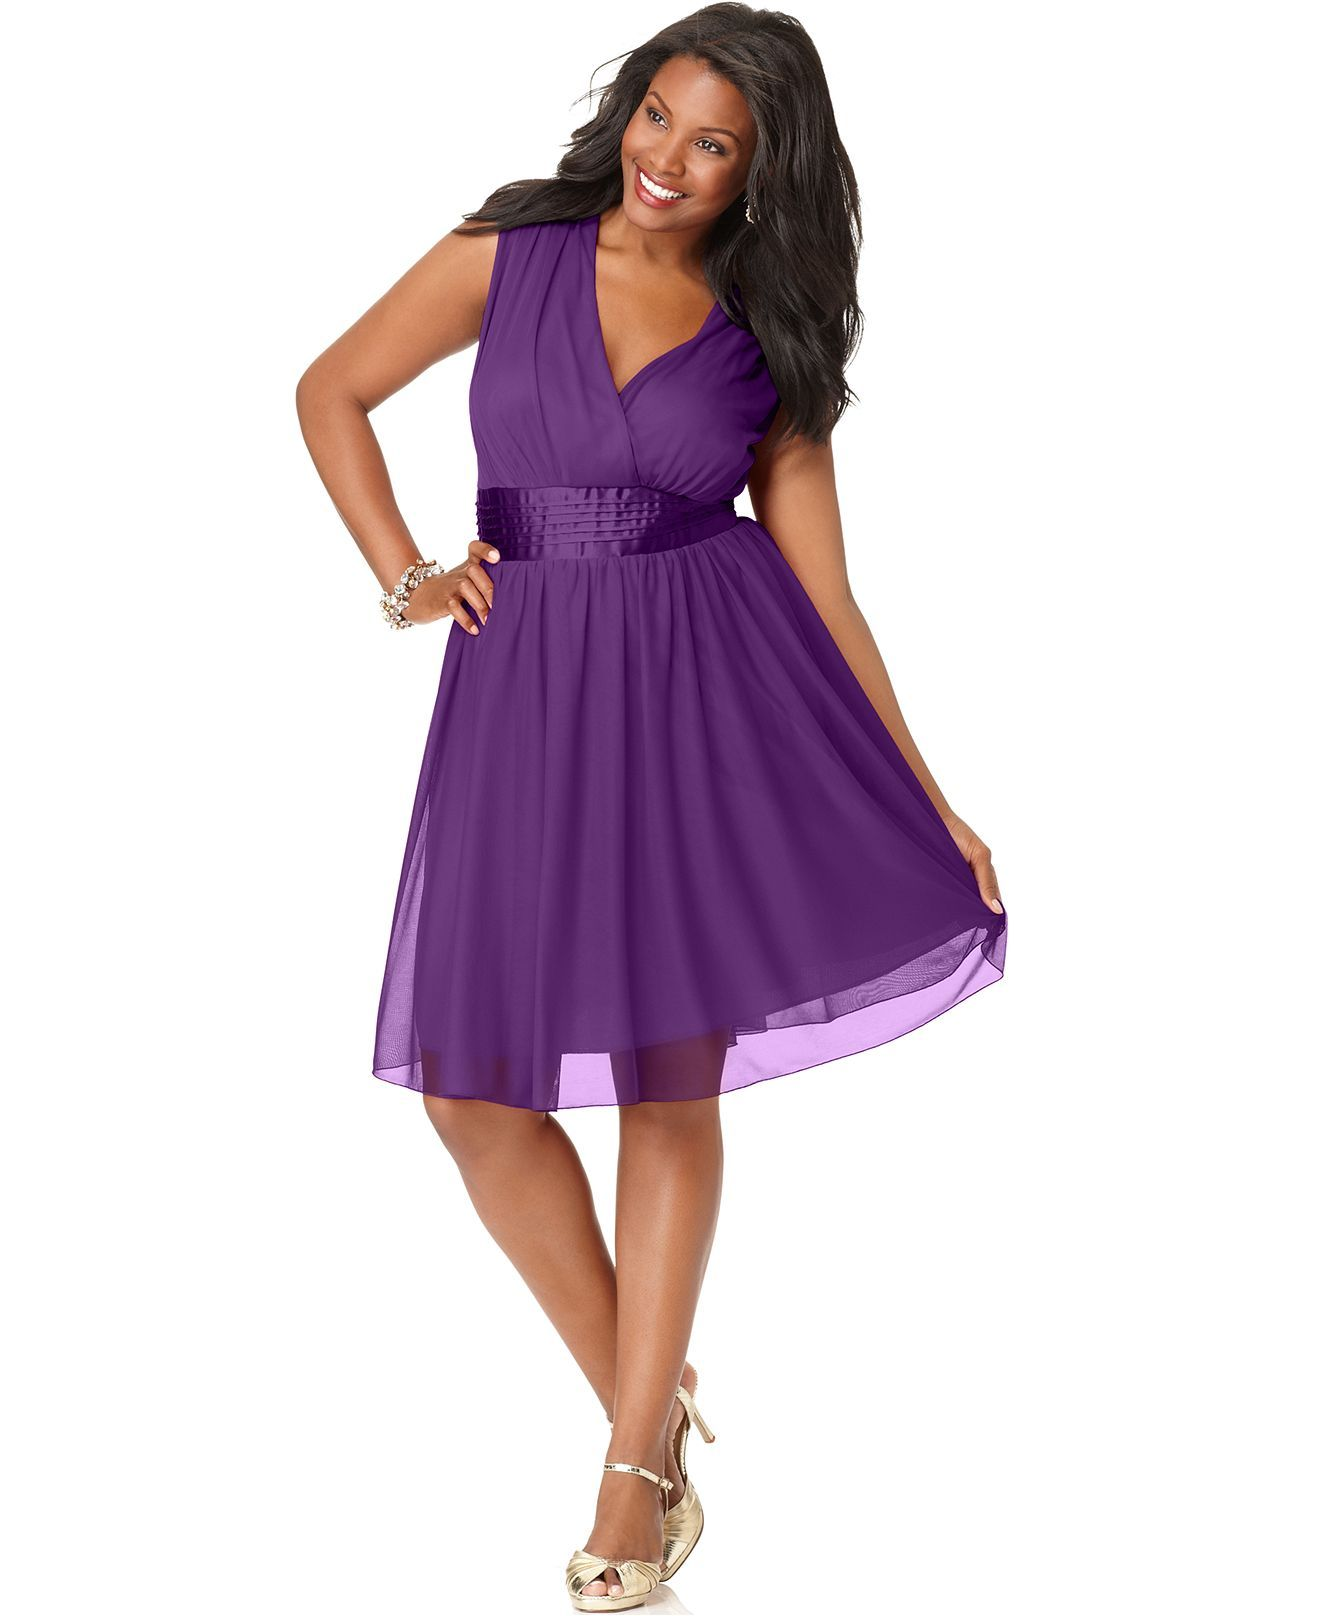 Trixxi Plus Size Dress, Sleeveless Banded Empire A-Line - Plus Size ...